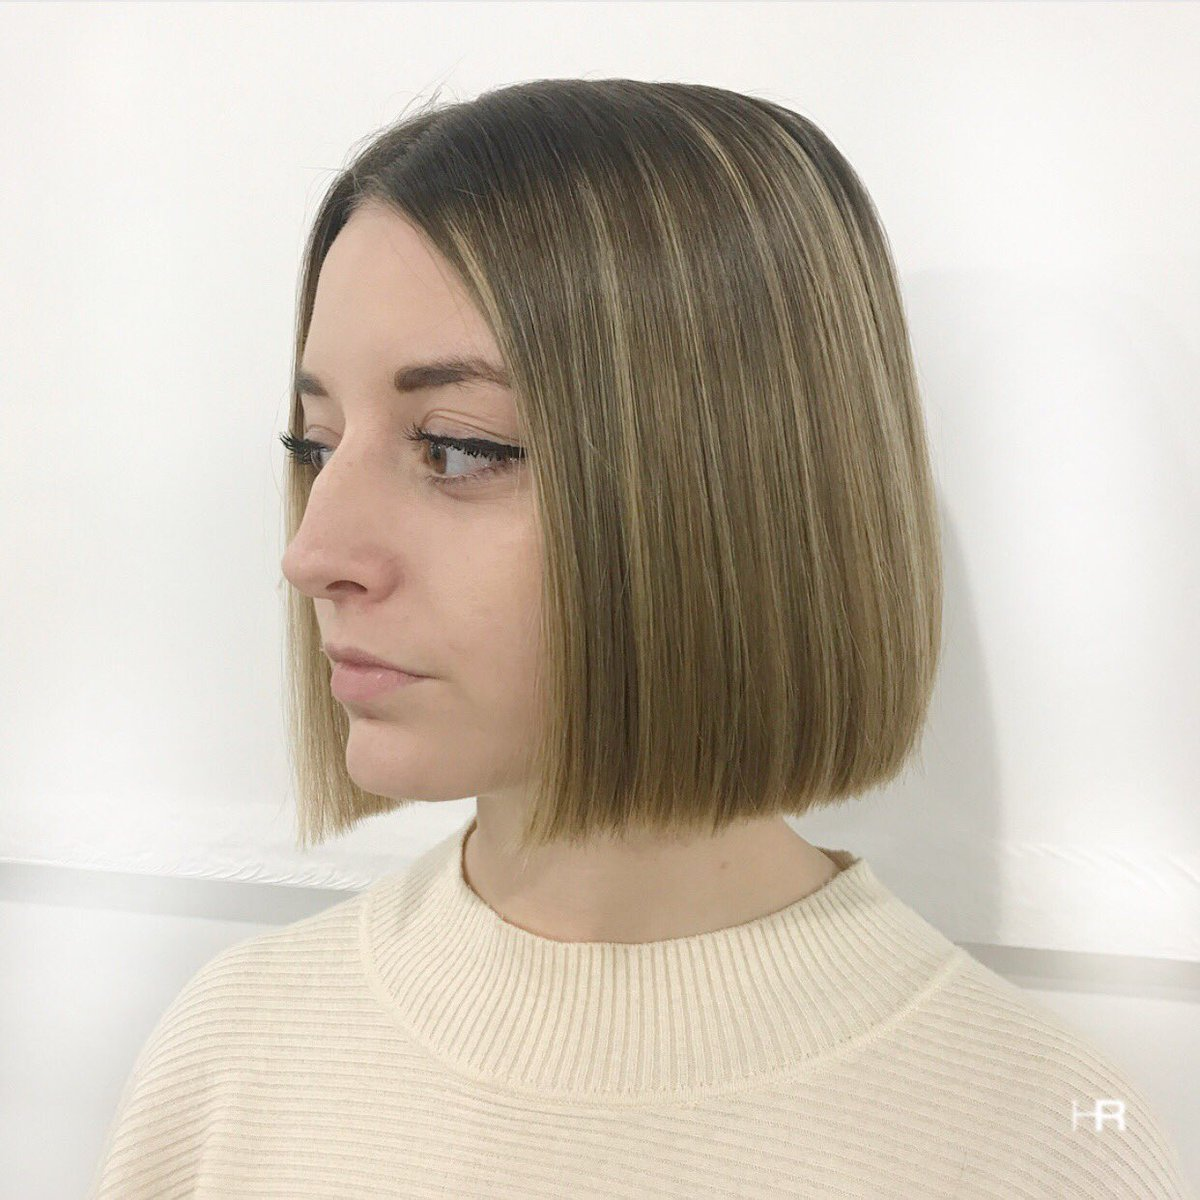 Hair Republic On Twitter Clean Crisp A Straight Lined